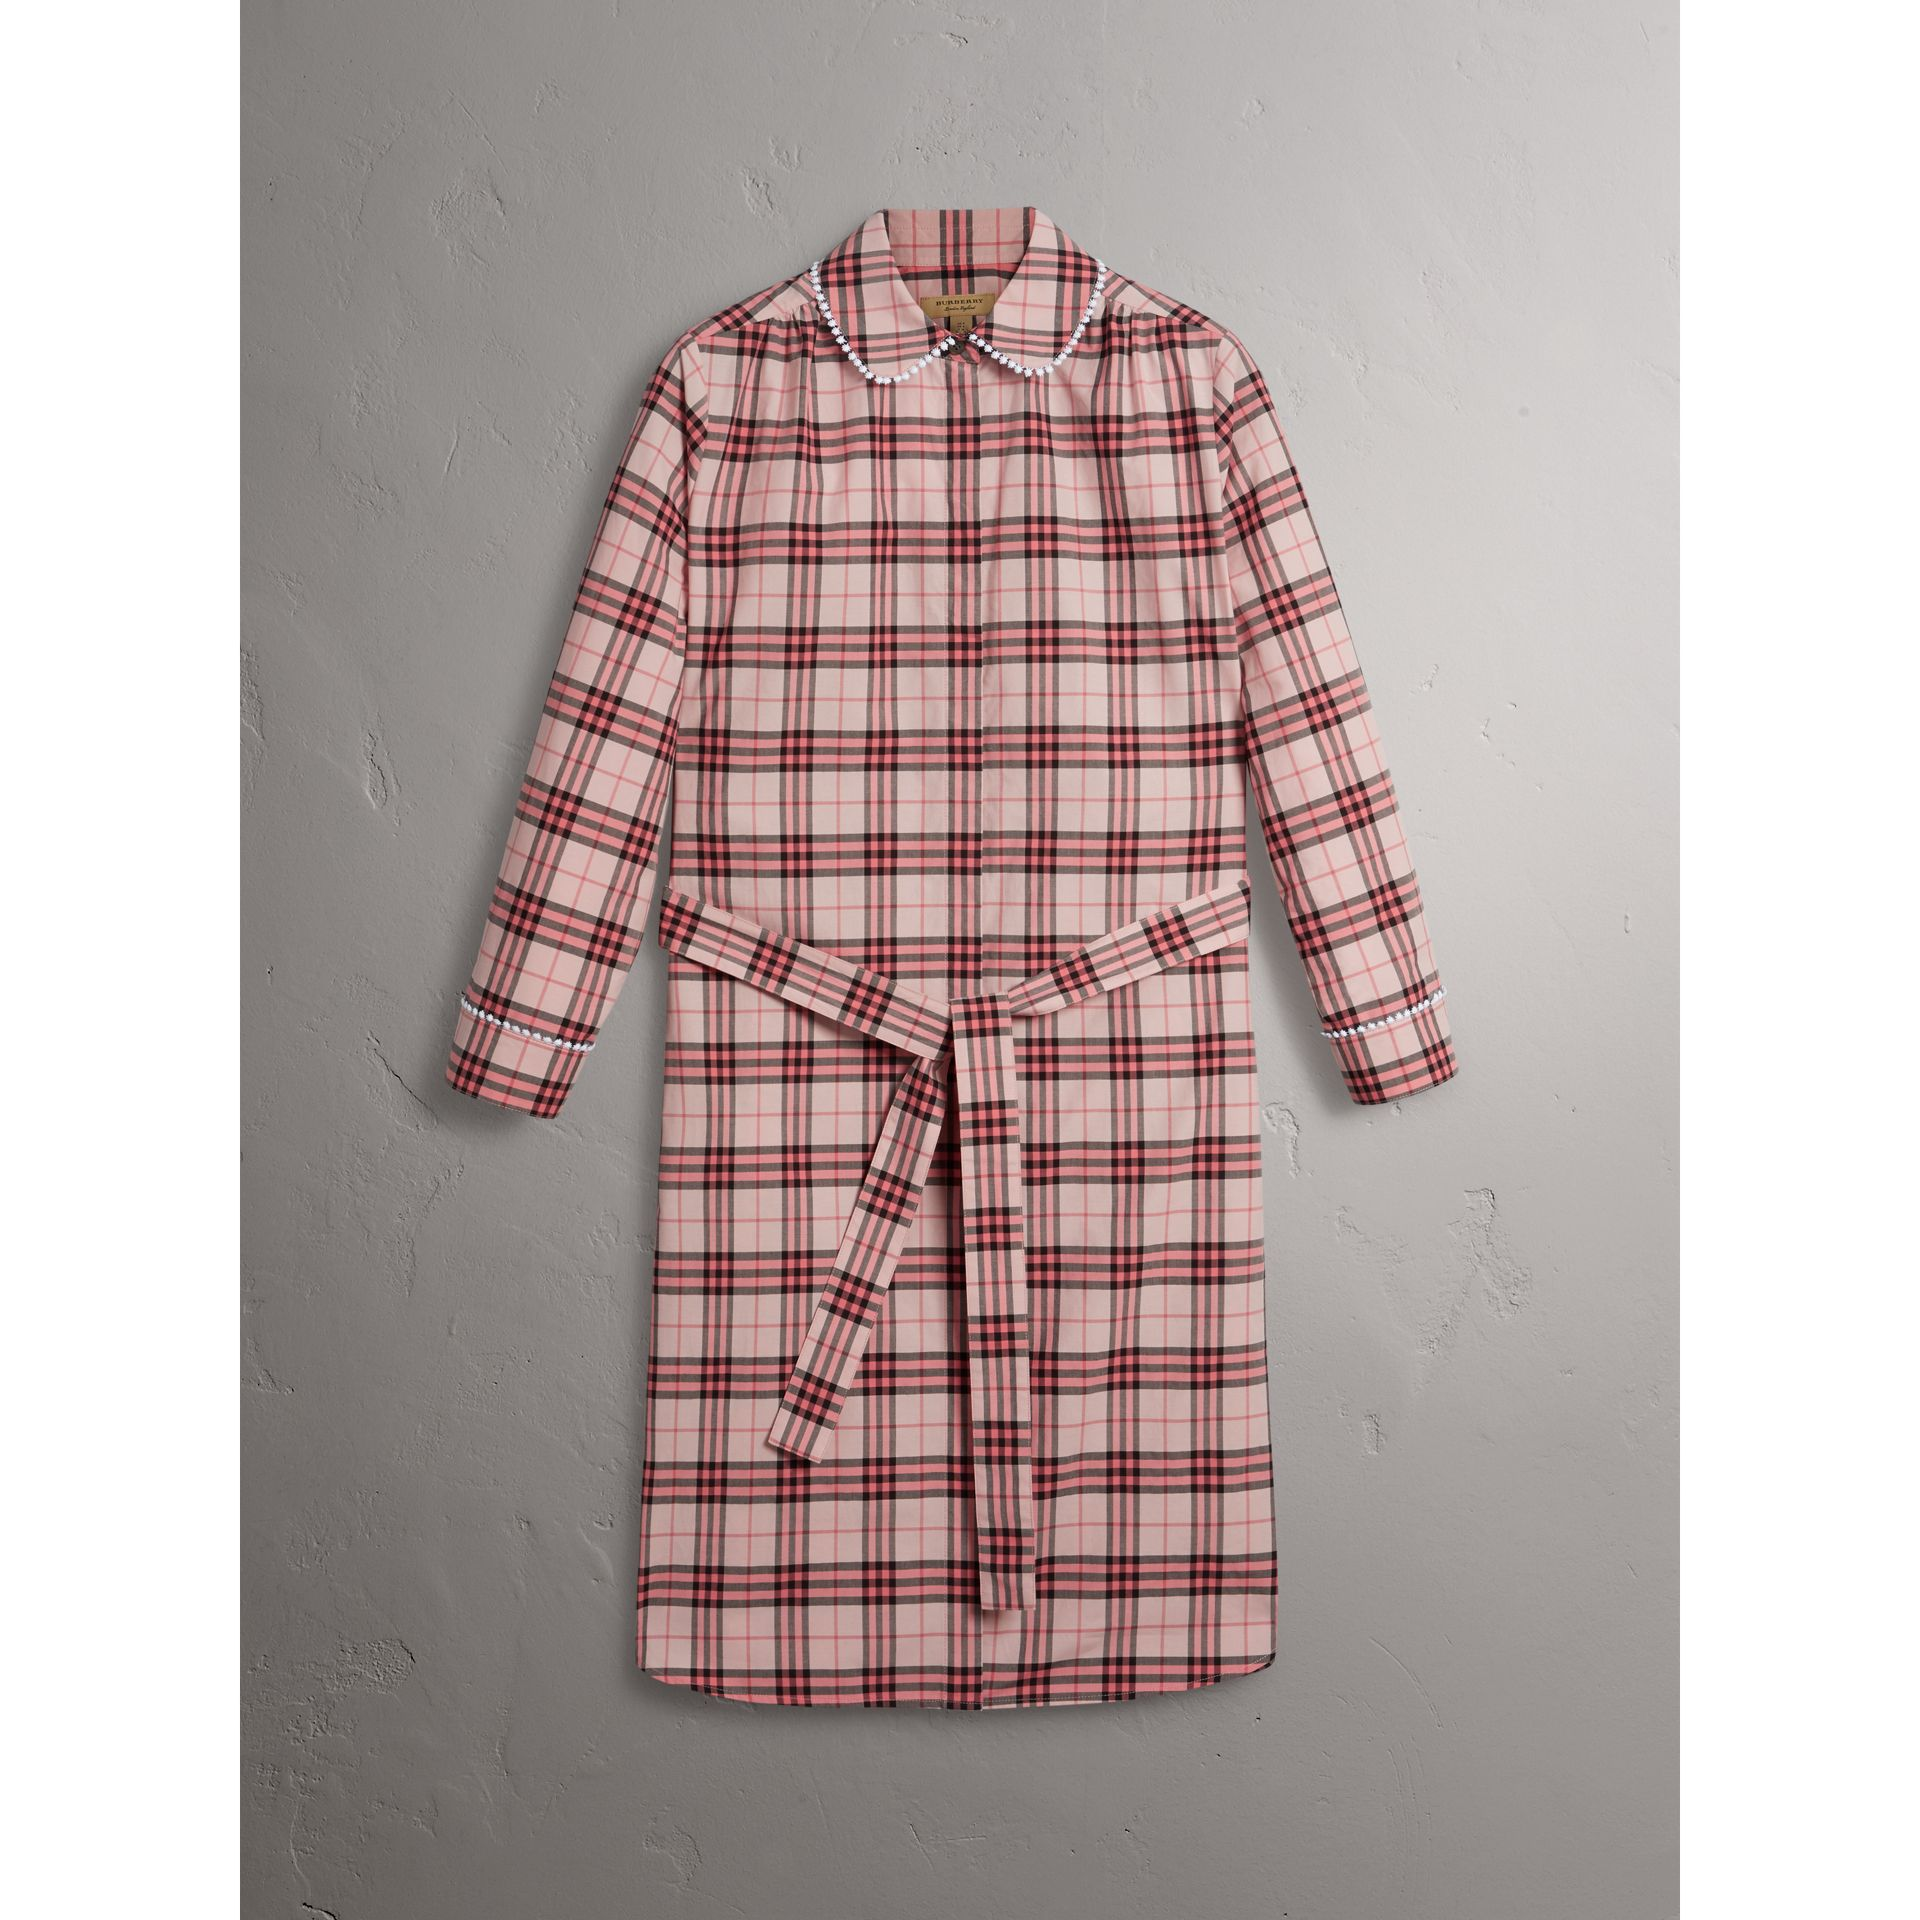 Lace Trim Collar Check Cotton Shirt Dress in Pink Azalea - Women | Burberry United Kingdom - gallery image 3